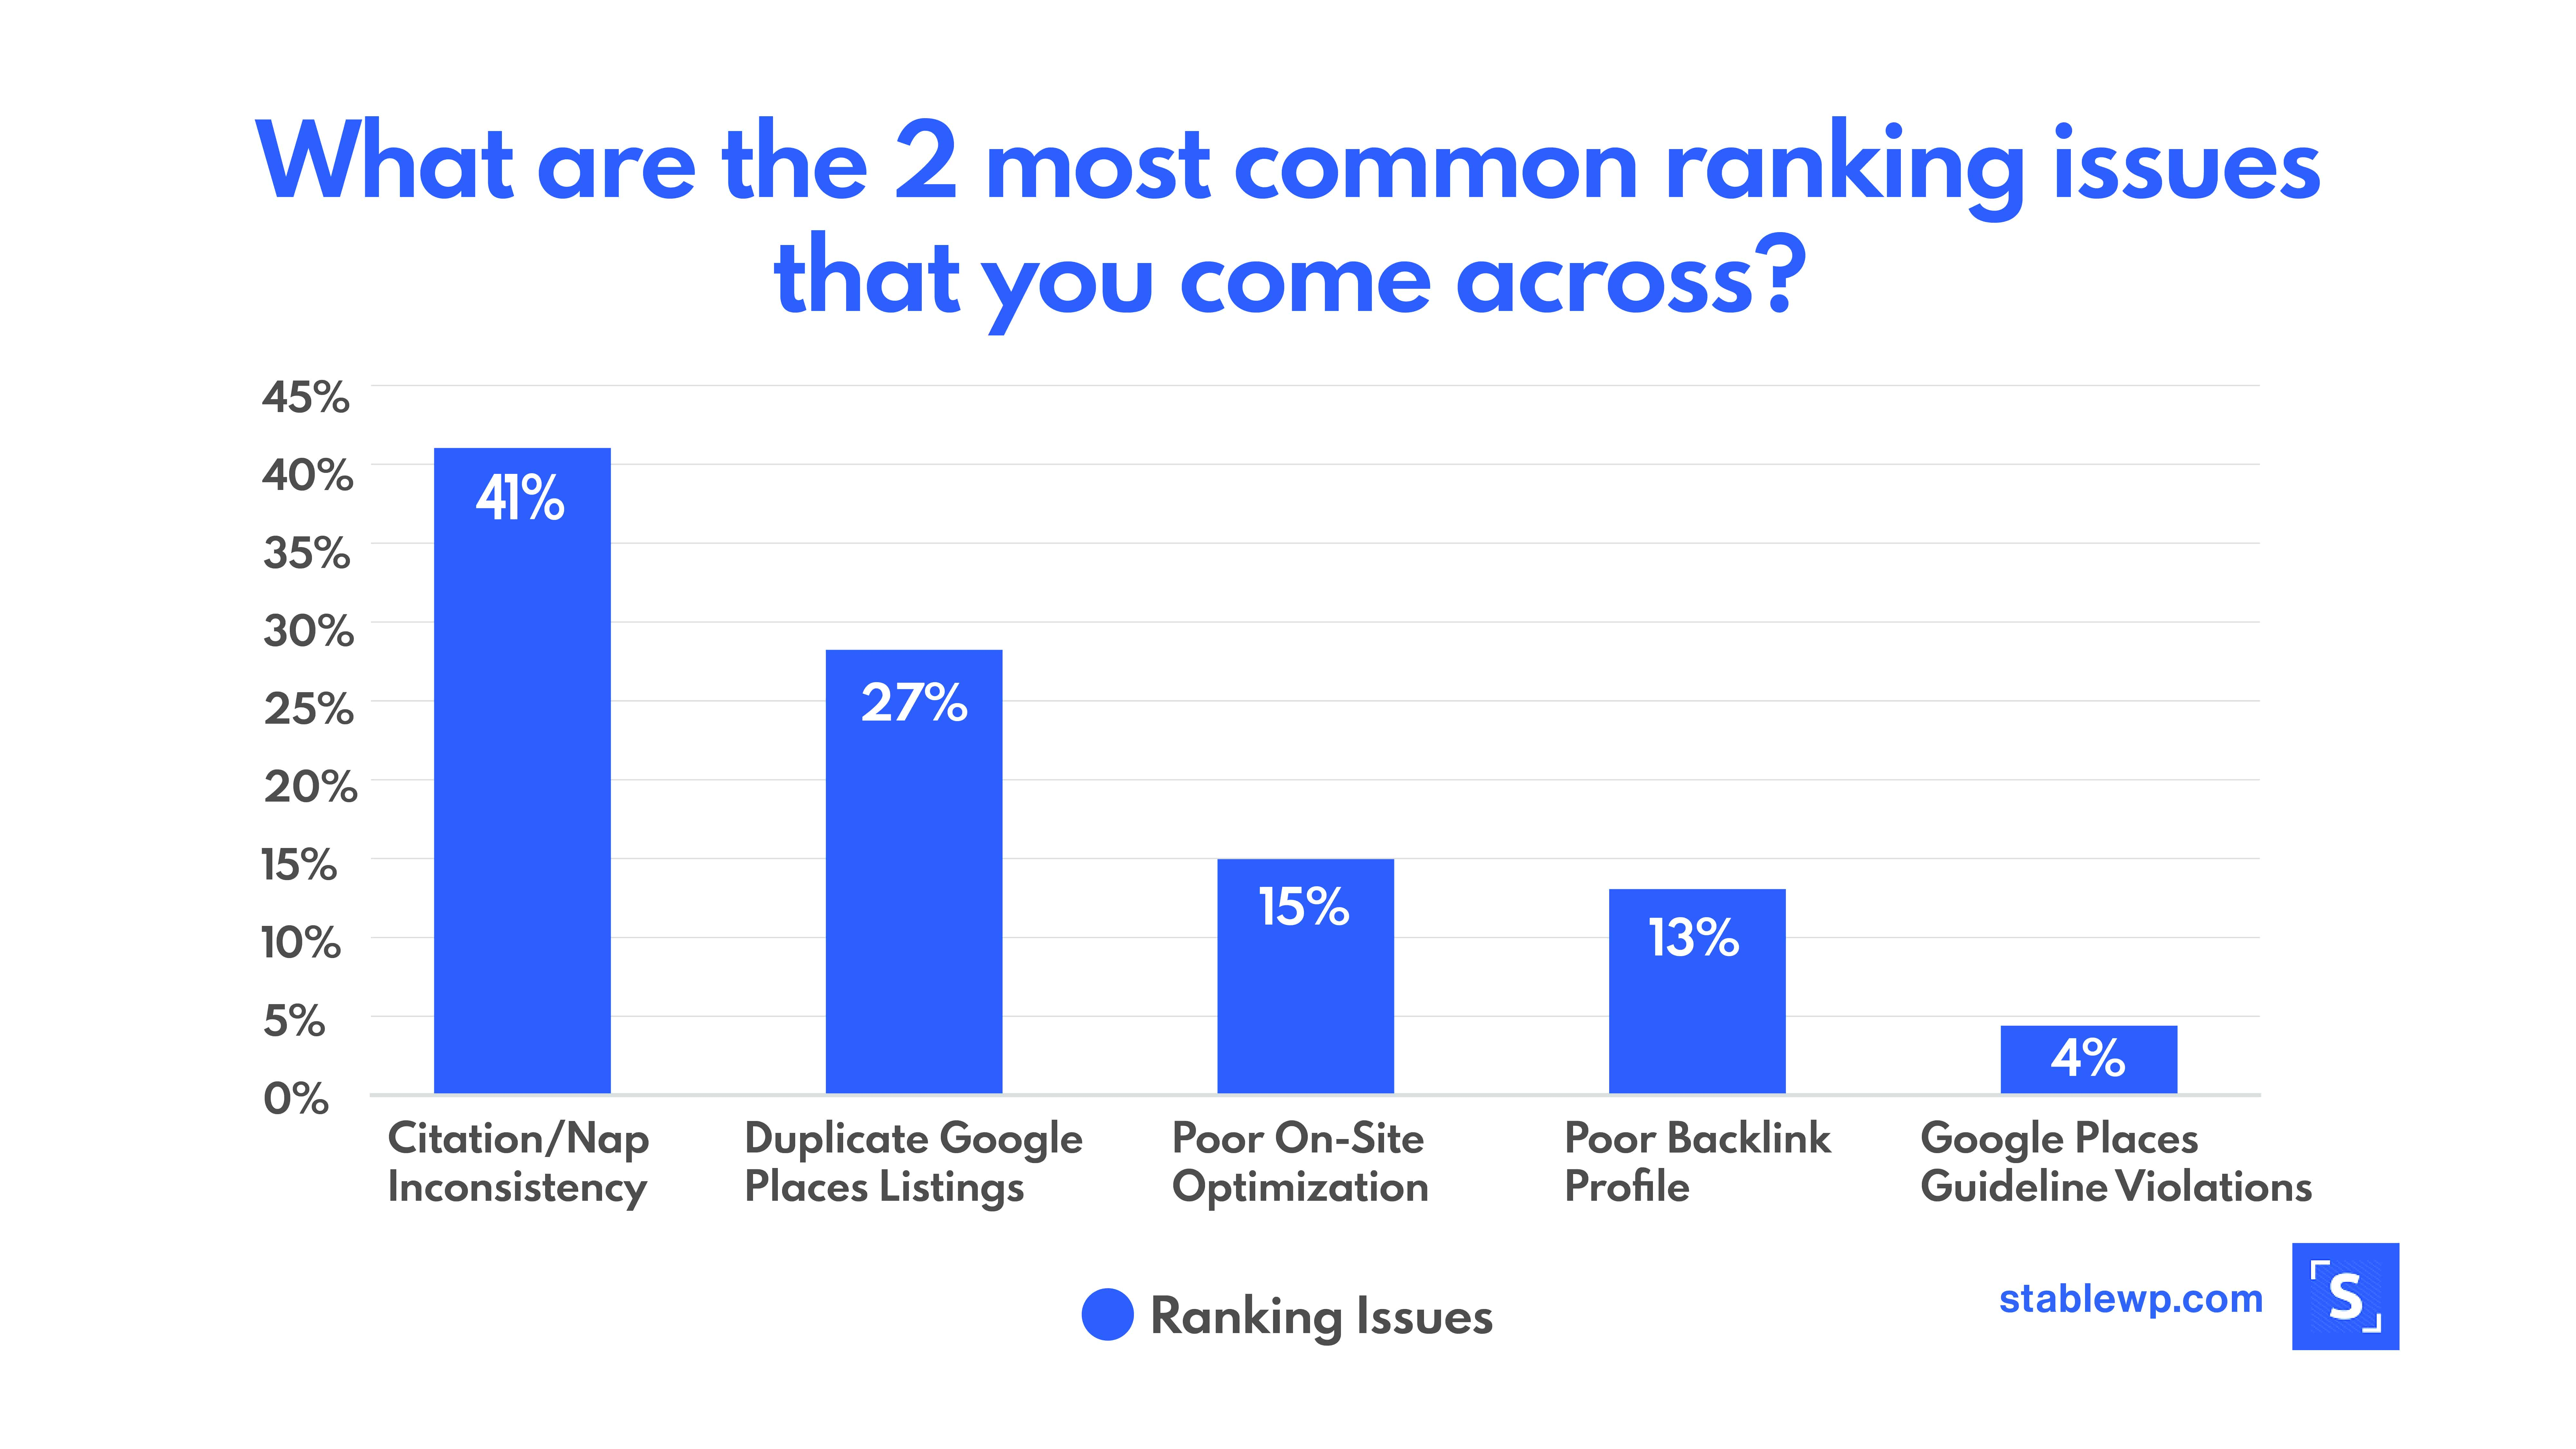 Bar graph showing most common ranking issues for local businesses emphasizing that 41% have a problem with citation inconsistencies